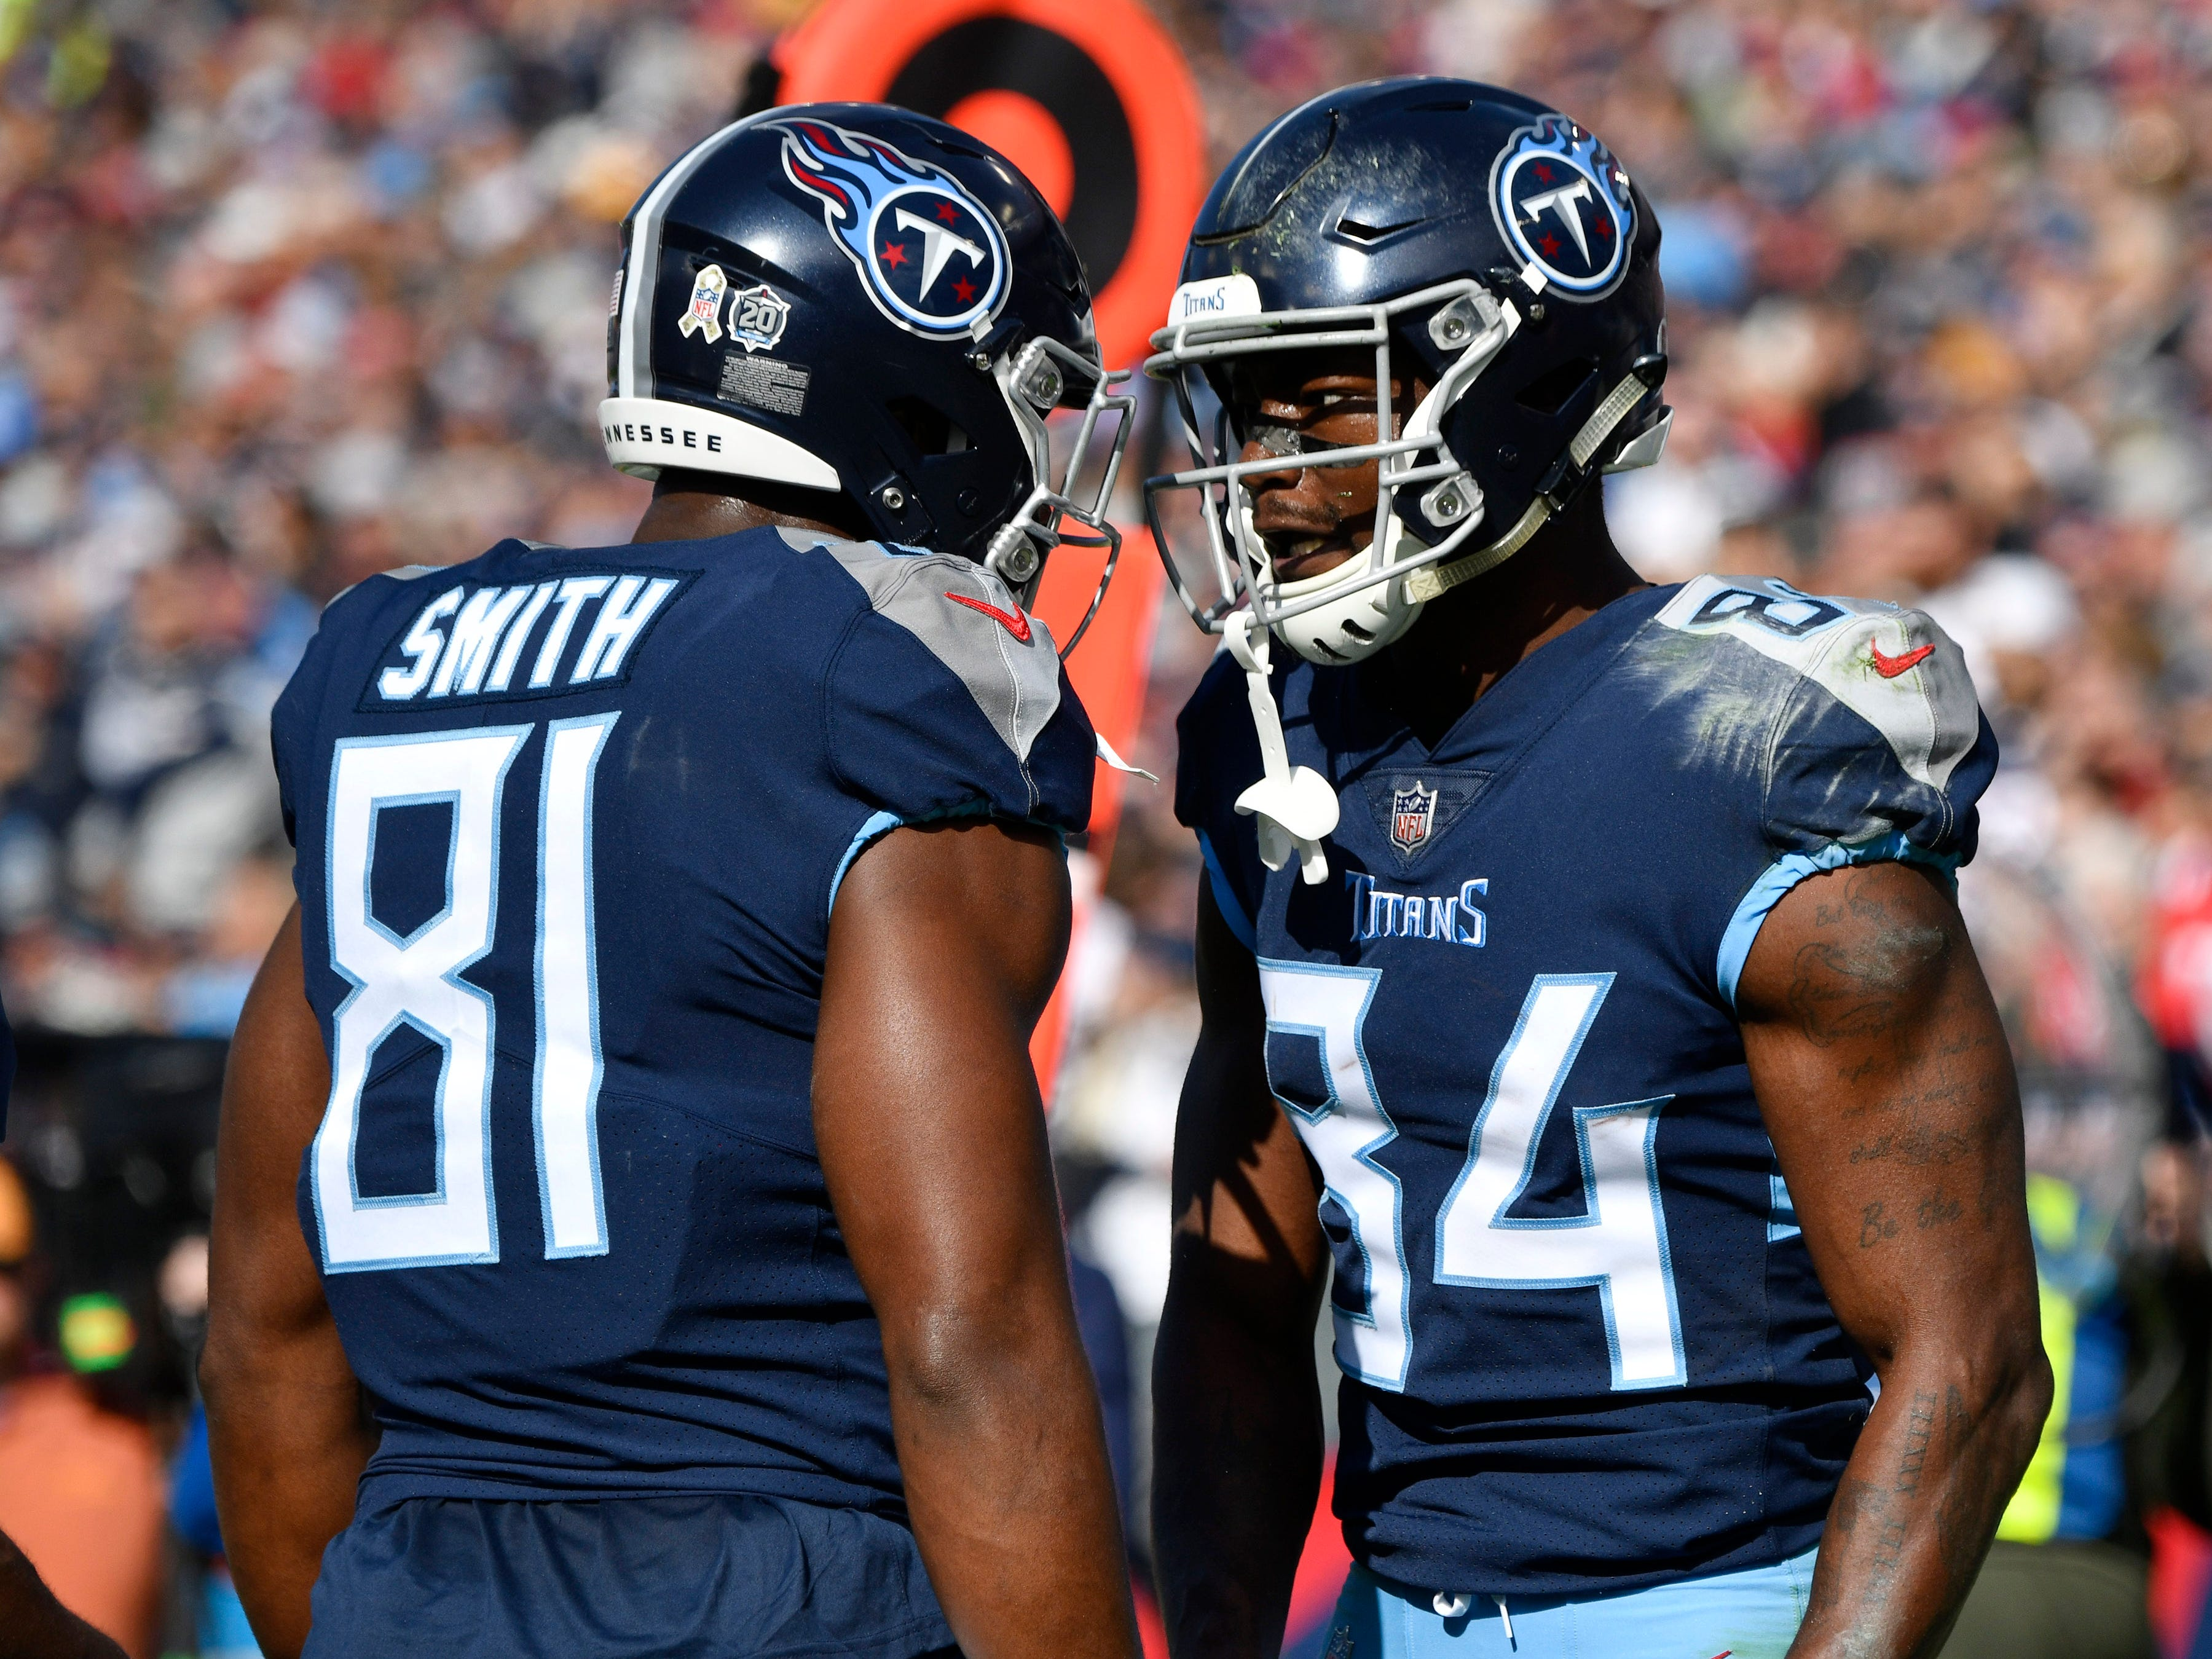 Titans at Colts: Keys to victory